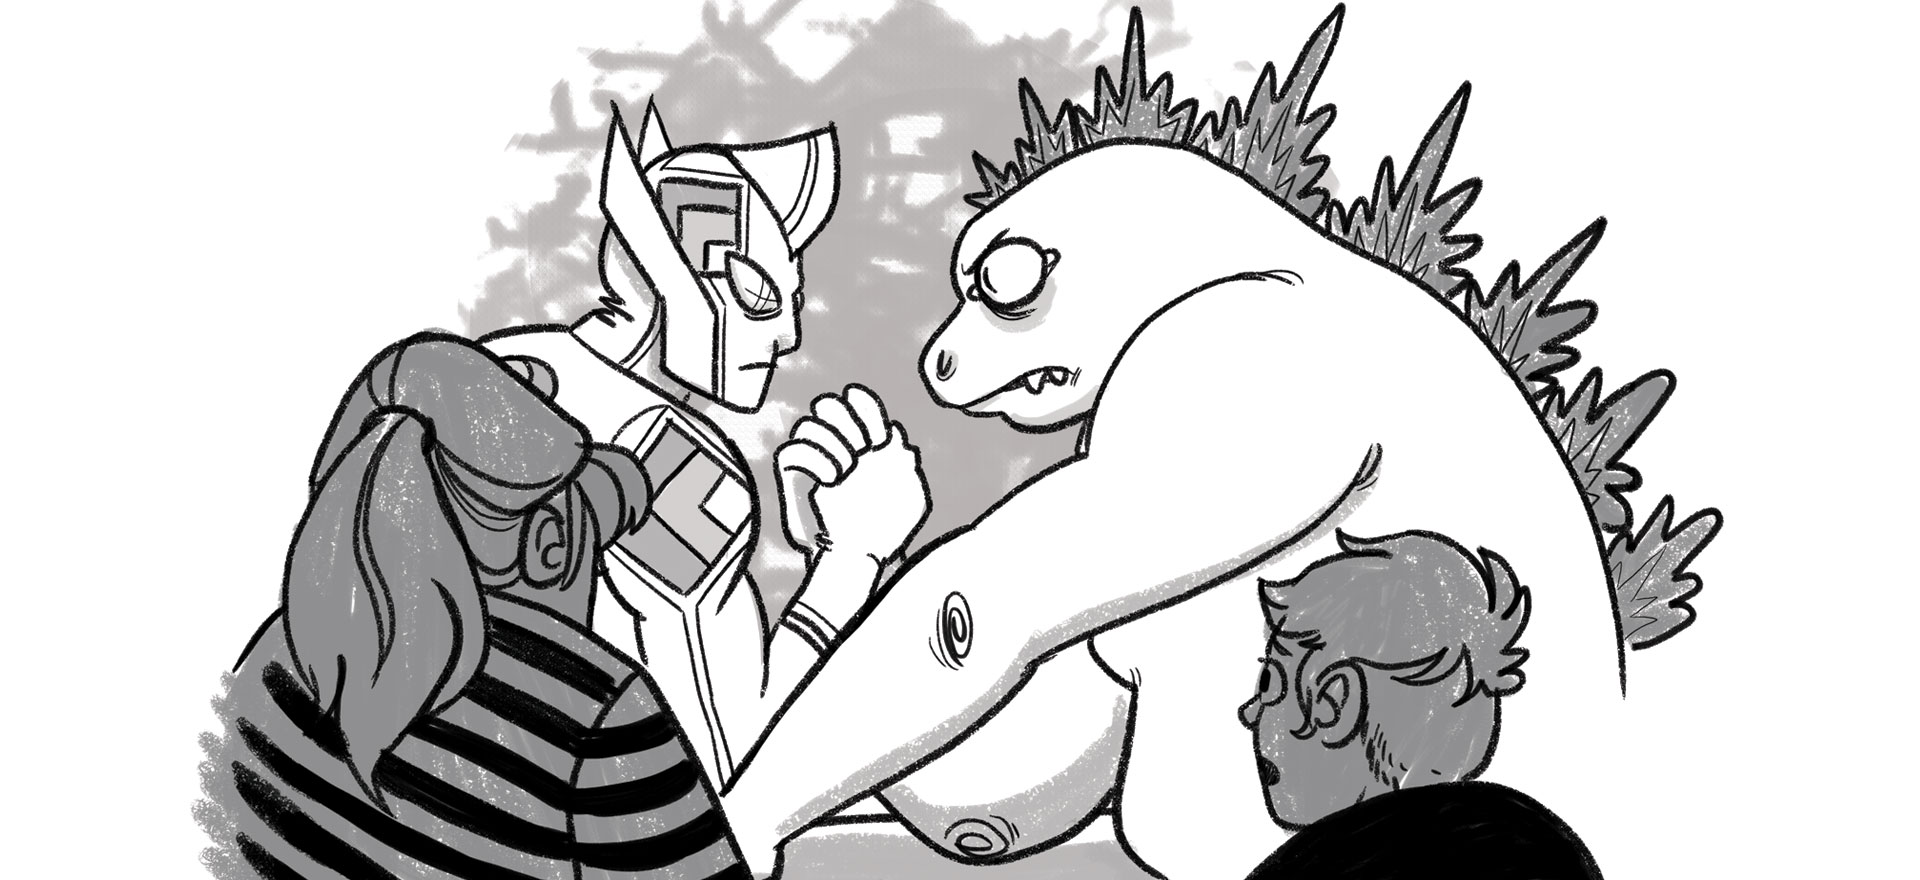 The RICG, represented by an Ultraman-like character, arm-wrestling a web standards kaiju to a stalemate.